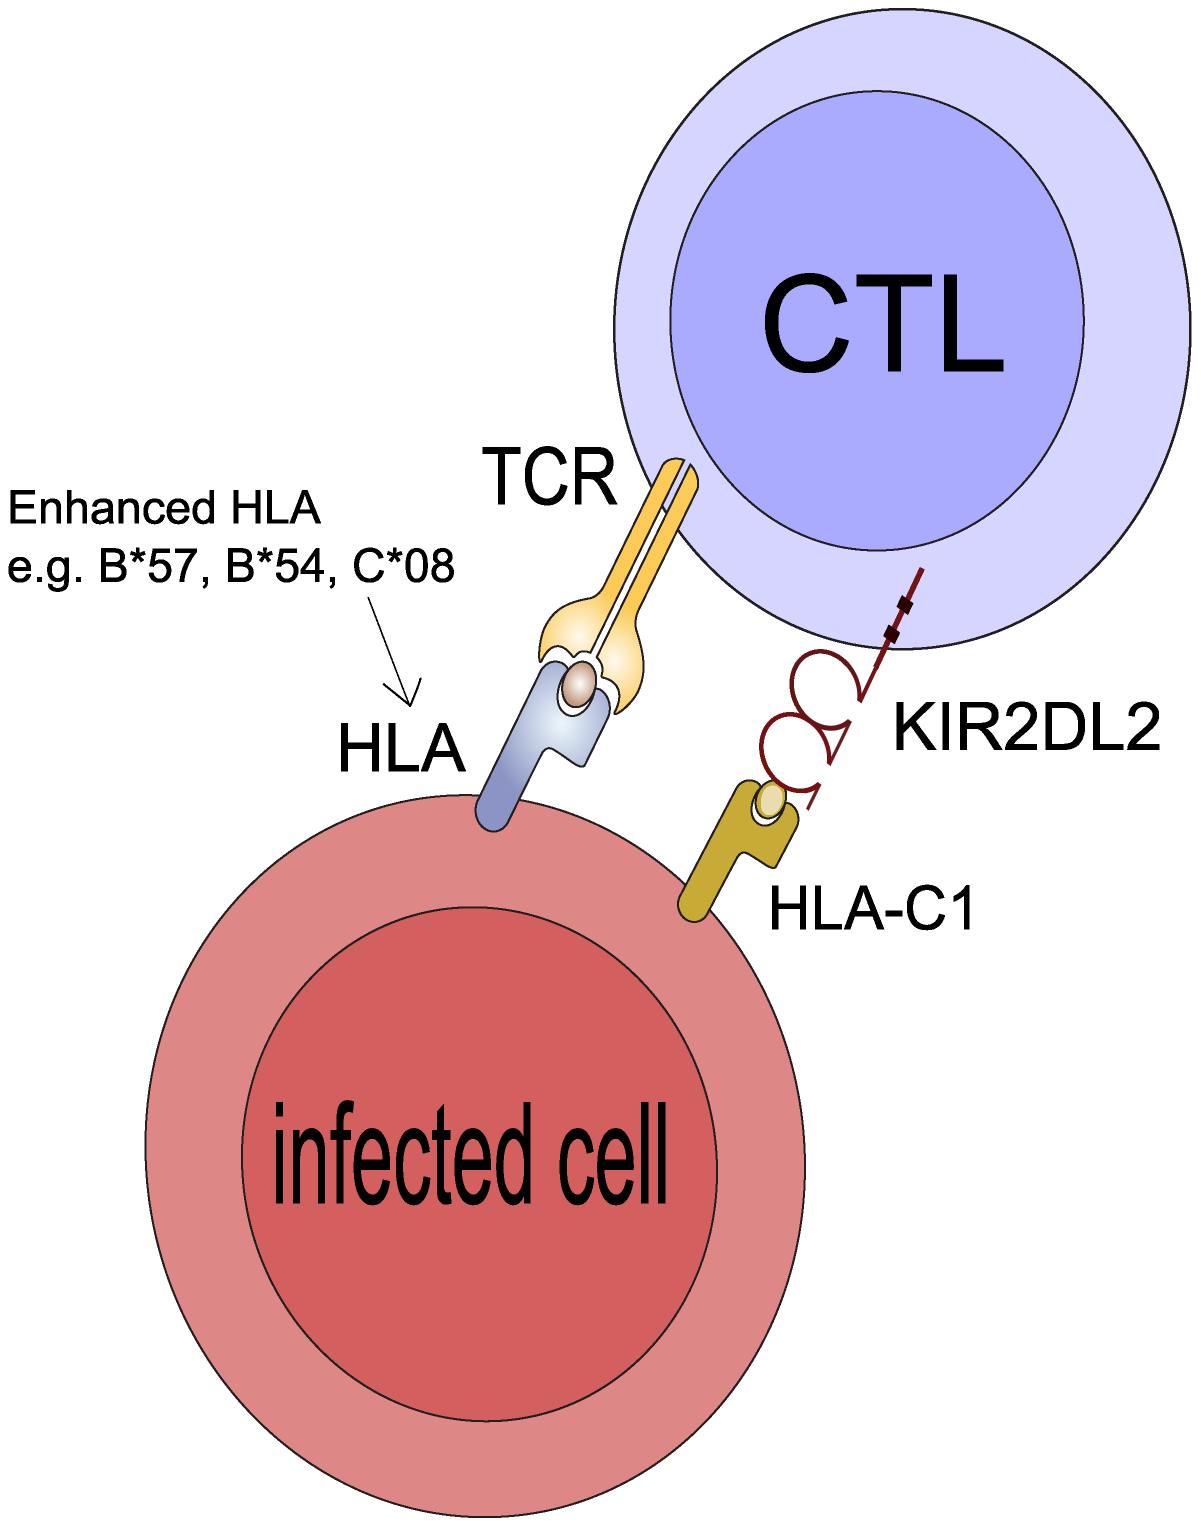 Postulated mechanism: KIR2DL2 reduces clonal exhaustion of CD8+ T cells and is necessary for an effective immune response in the face of chronic antigen stimulation.